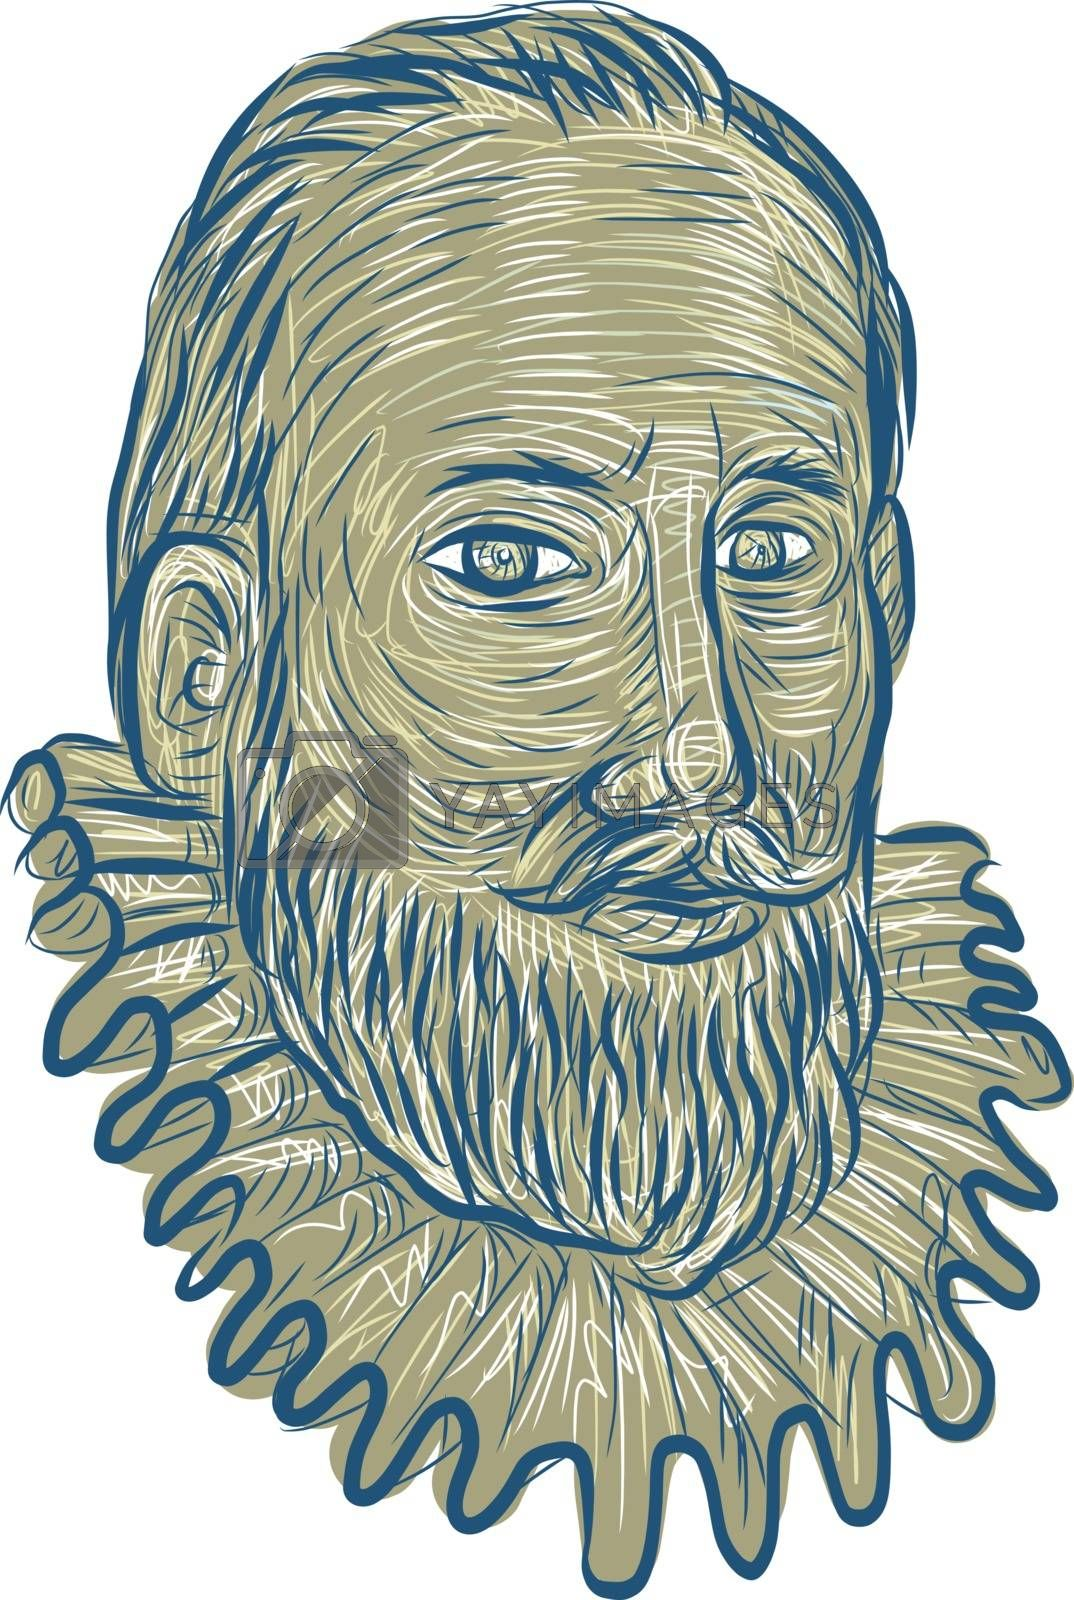 Drawing sketch style illustrationm of bust of Sir Walter Raleigh, an English landed gentleman, writer, poet, soldier, politician, courtier, spy and explorer bust viewed from front set on isolated white background.